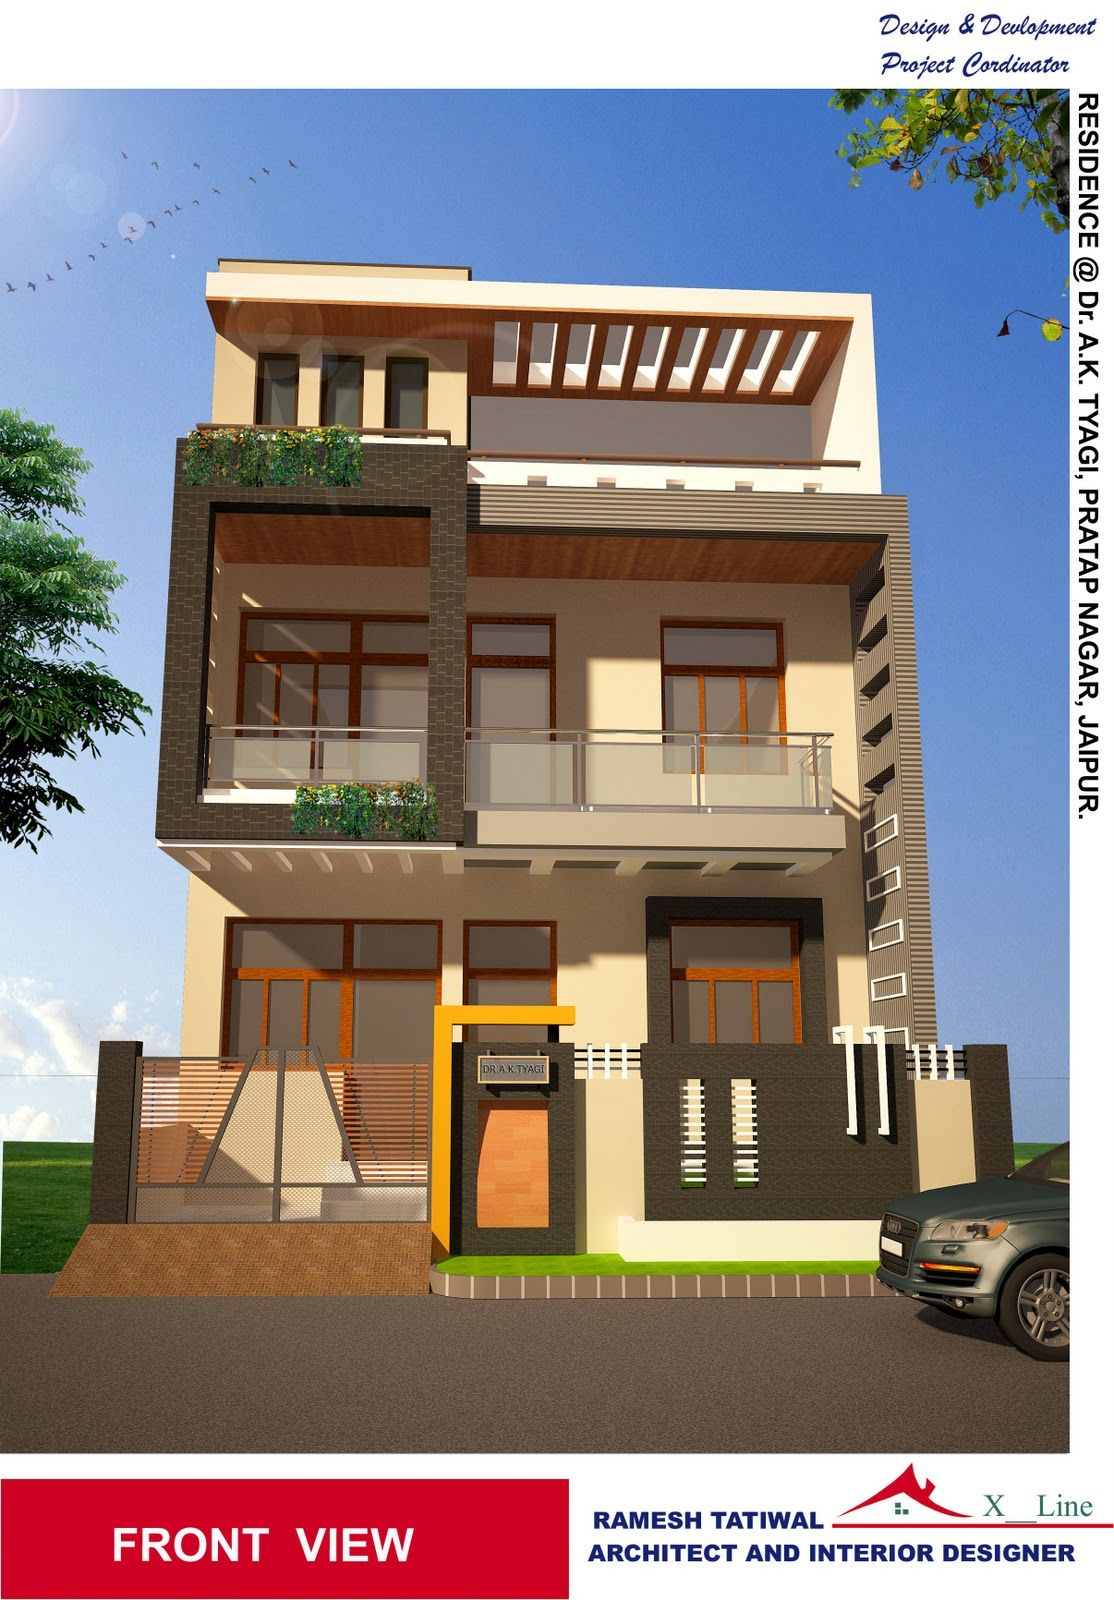 Housedesigns Modern Indian Home Architecture Design From: new home designs in india